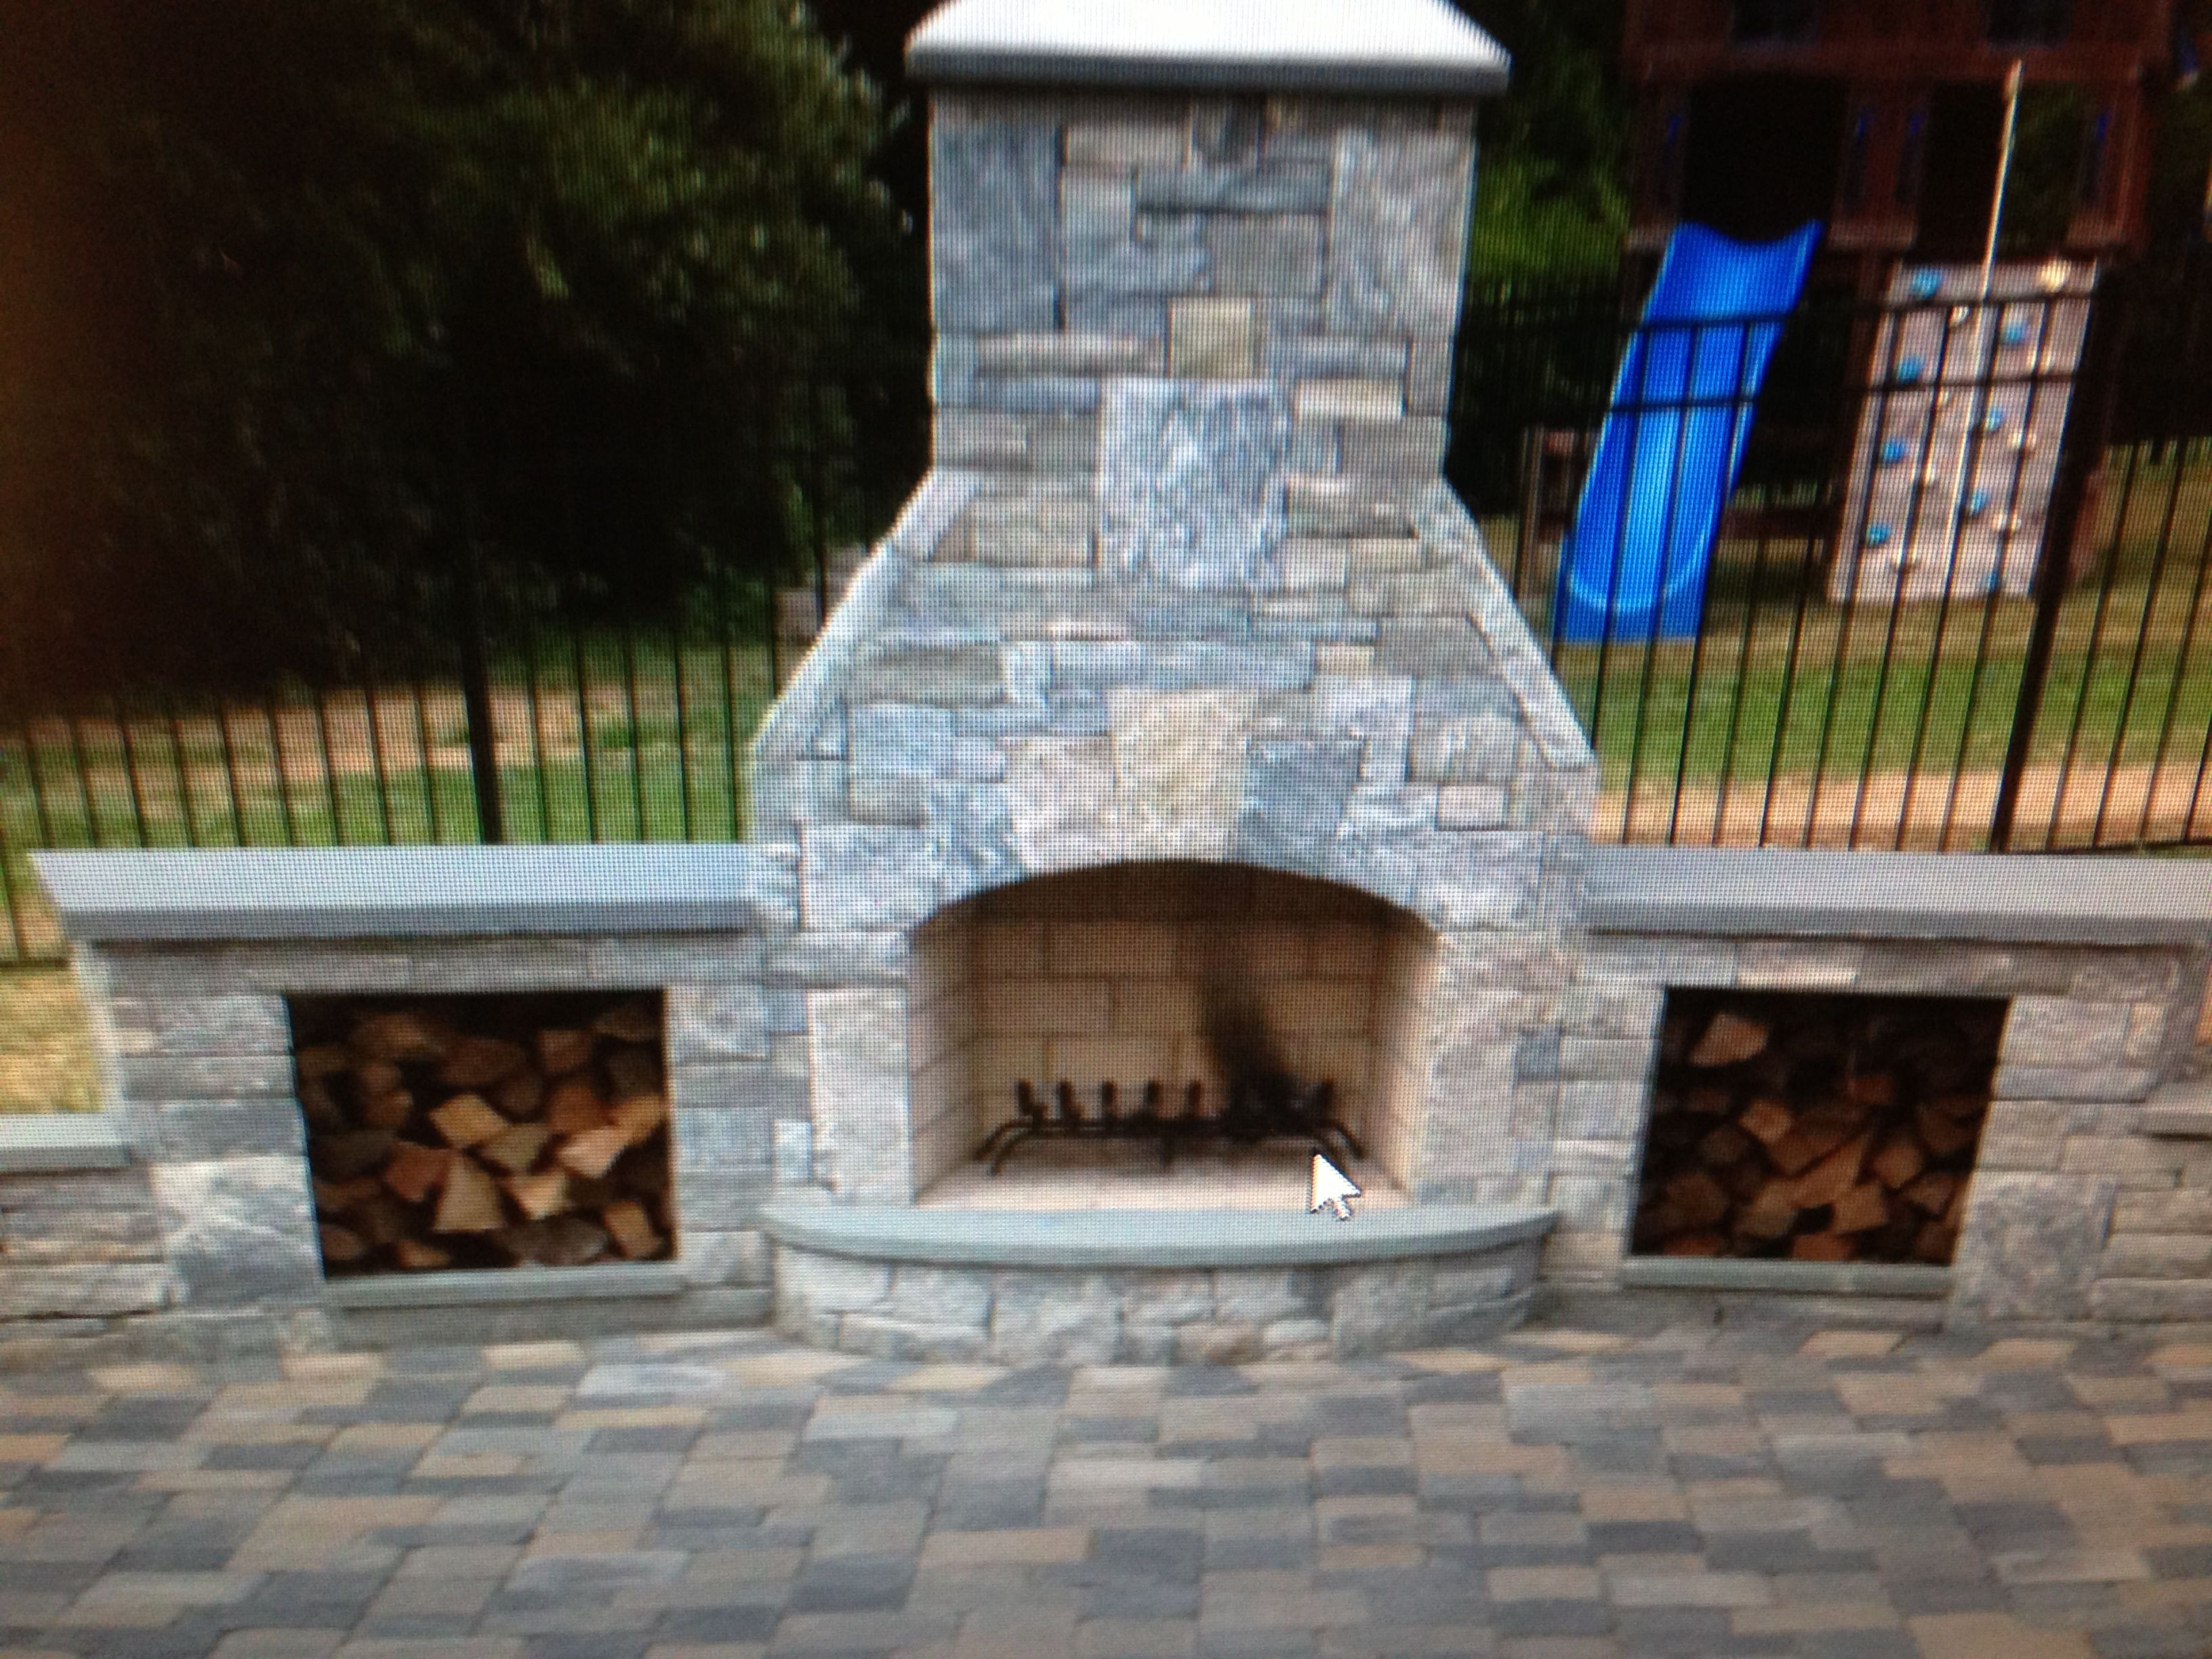 The Natural Stone Of This Outdoor Fireplace With Curved Hearth And Twin Wood Bins Mixes Well With Multi Colored Pav Backyard Patio Outdoor Fireplace Fireplace